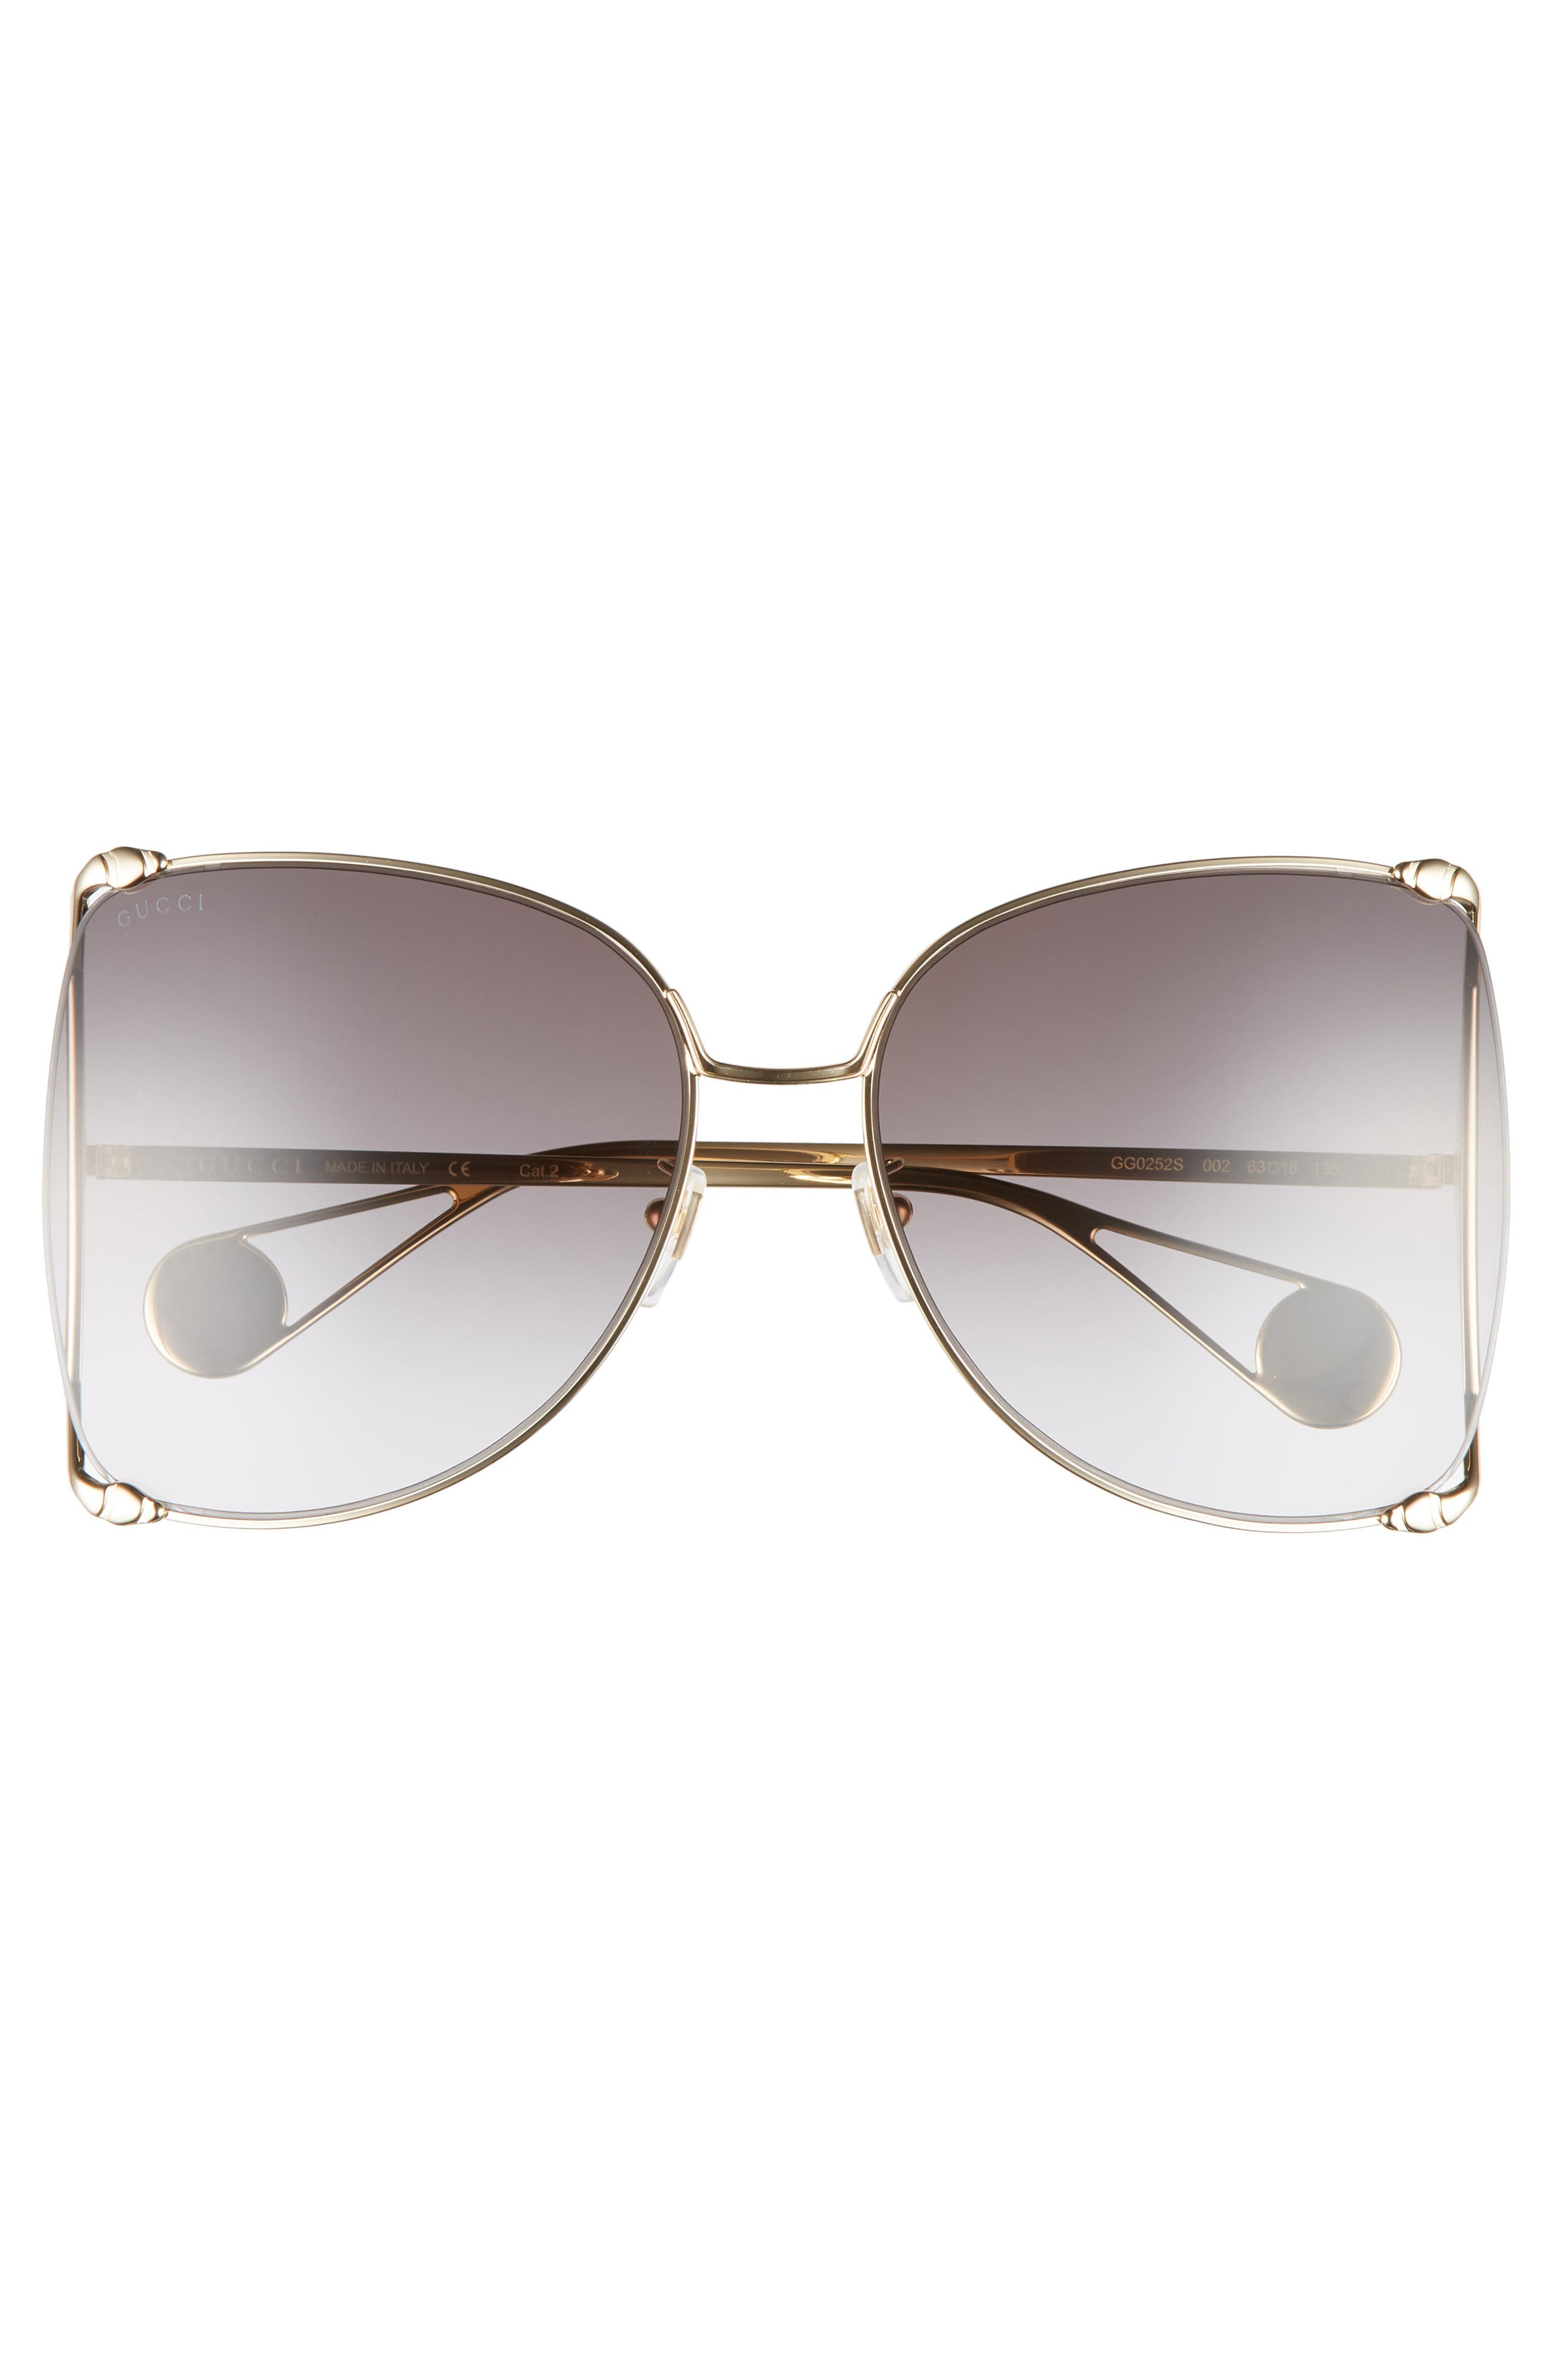 GUCCI, 63mm Gradient Oversize Butterfly Sunglasses, Alternate thumbnail 3, color, GOLD/ GRADIENT GREY